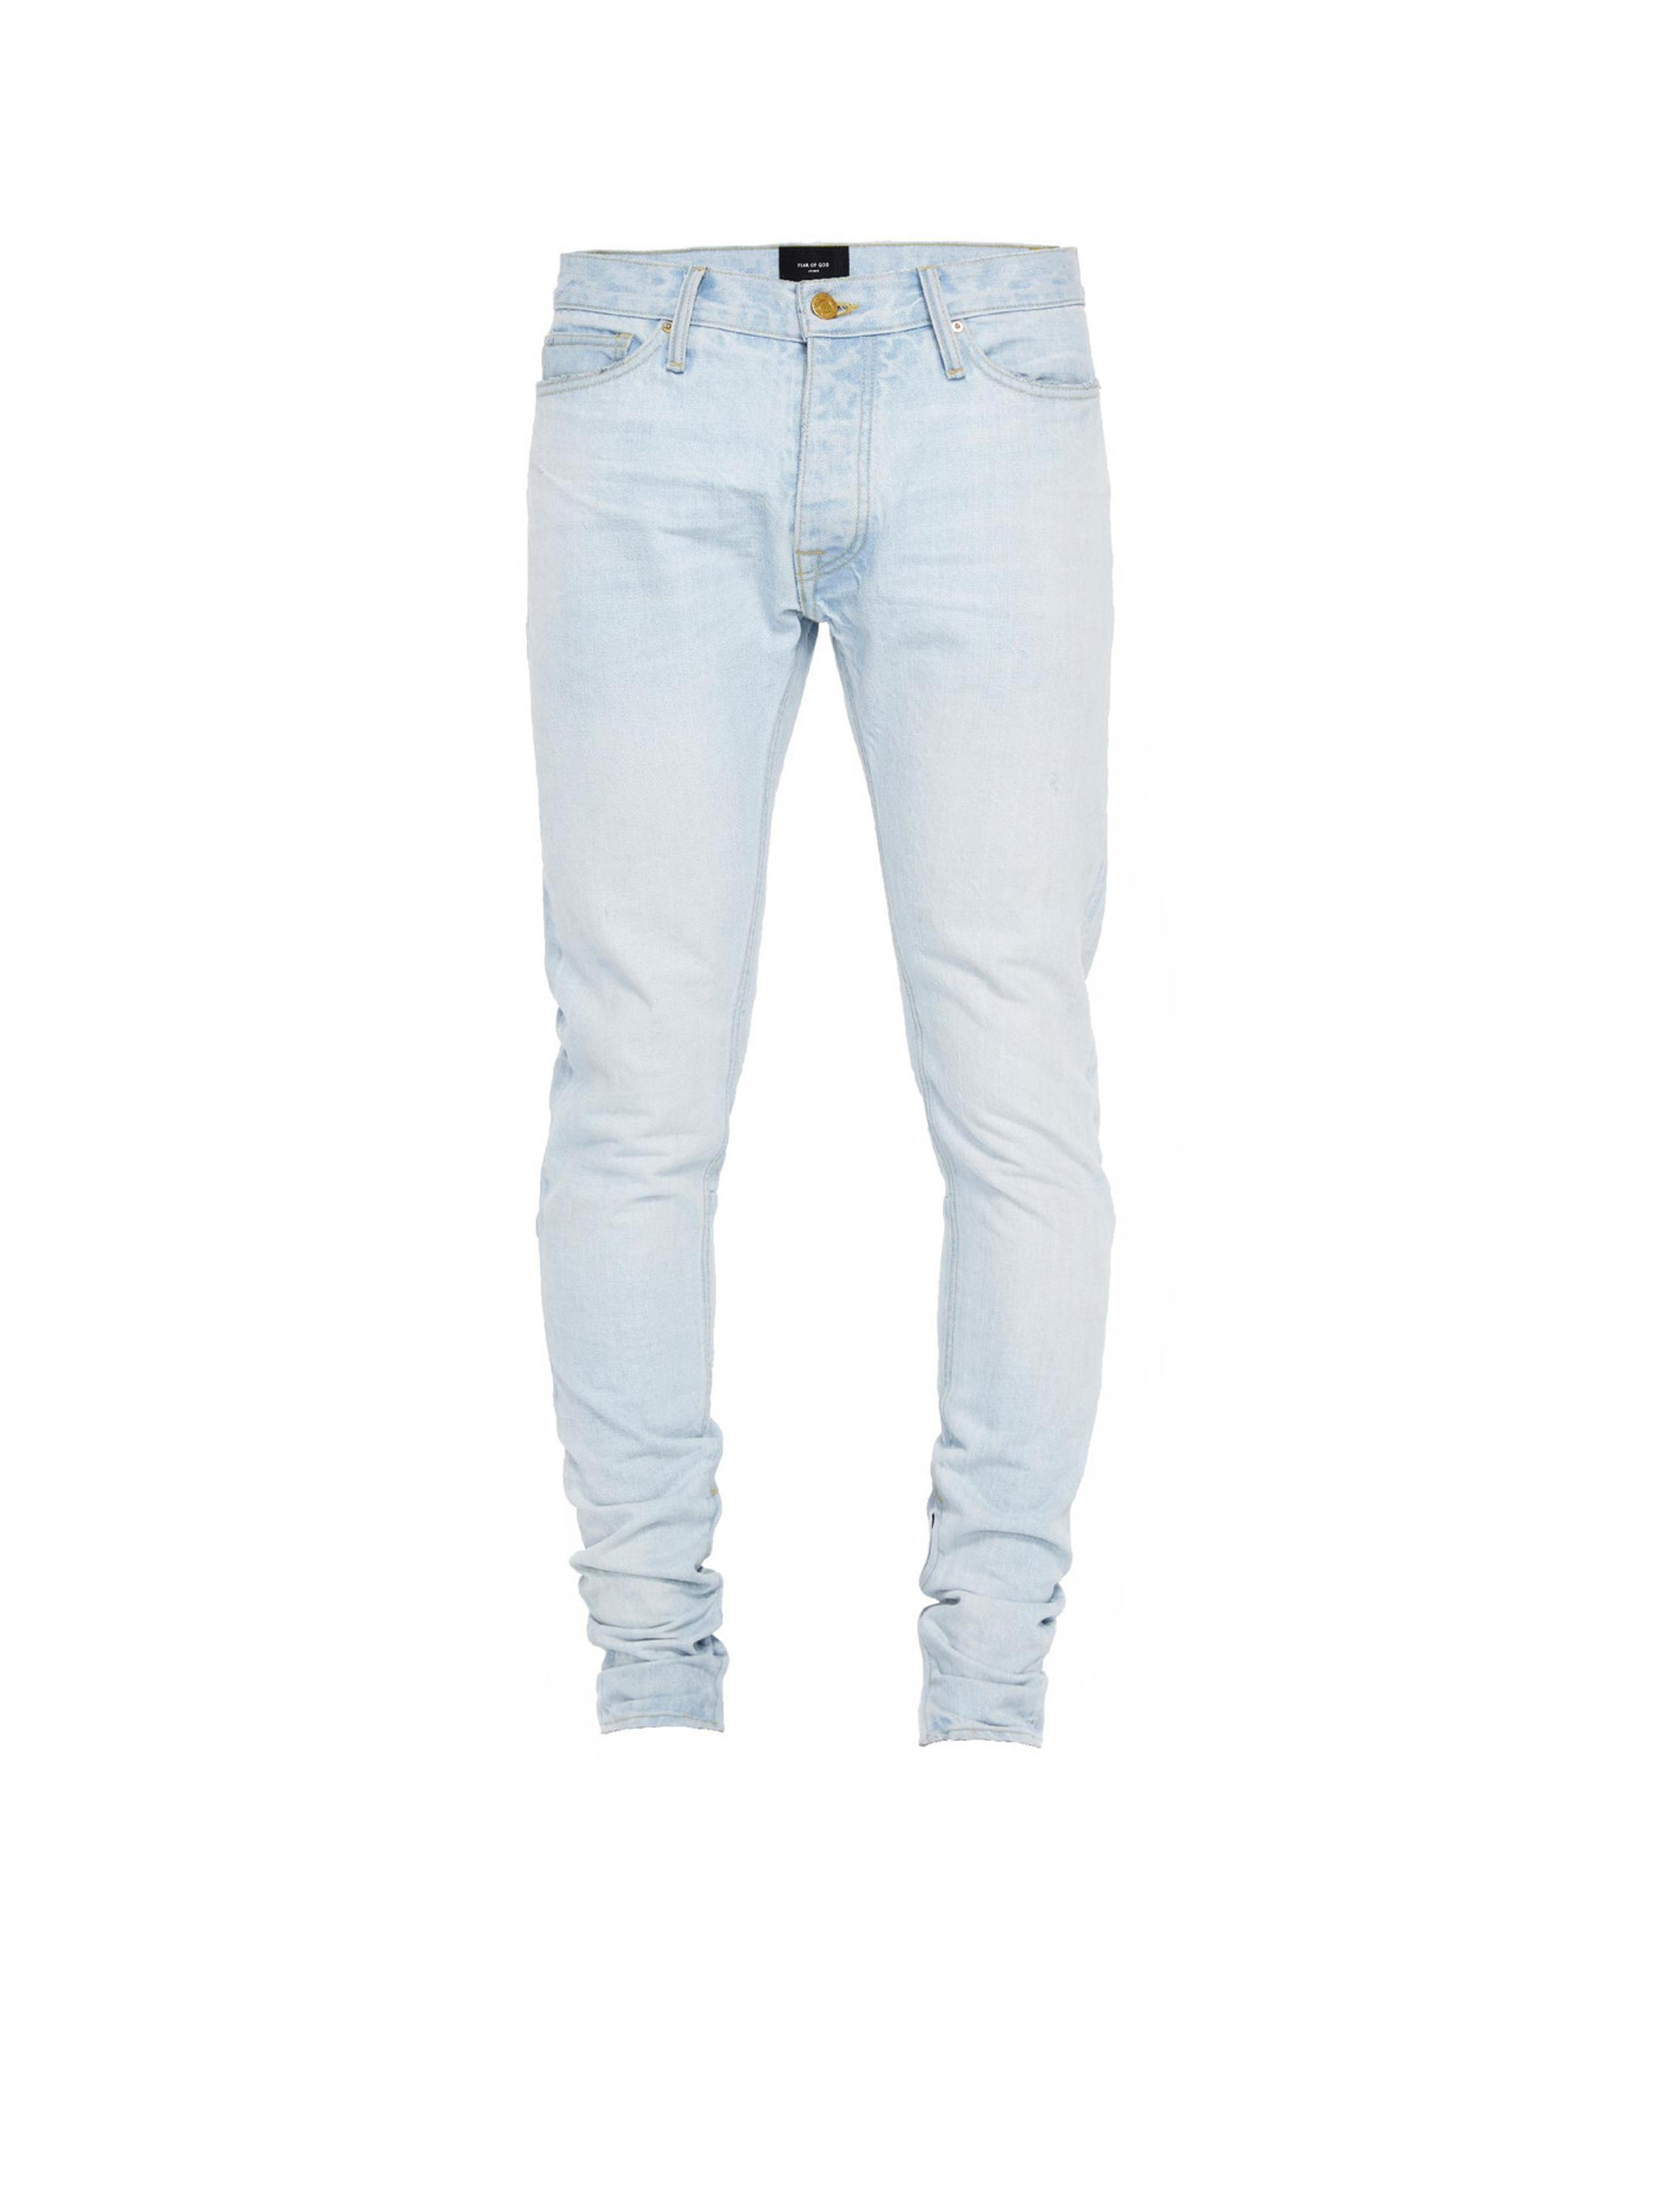 Fear of god skinny jeans trousers pants custom fashion wholesale light blue men jeans